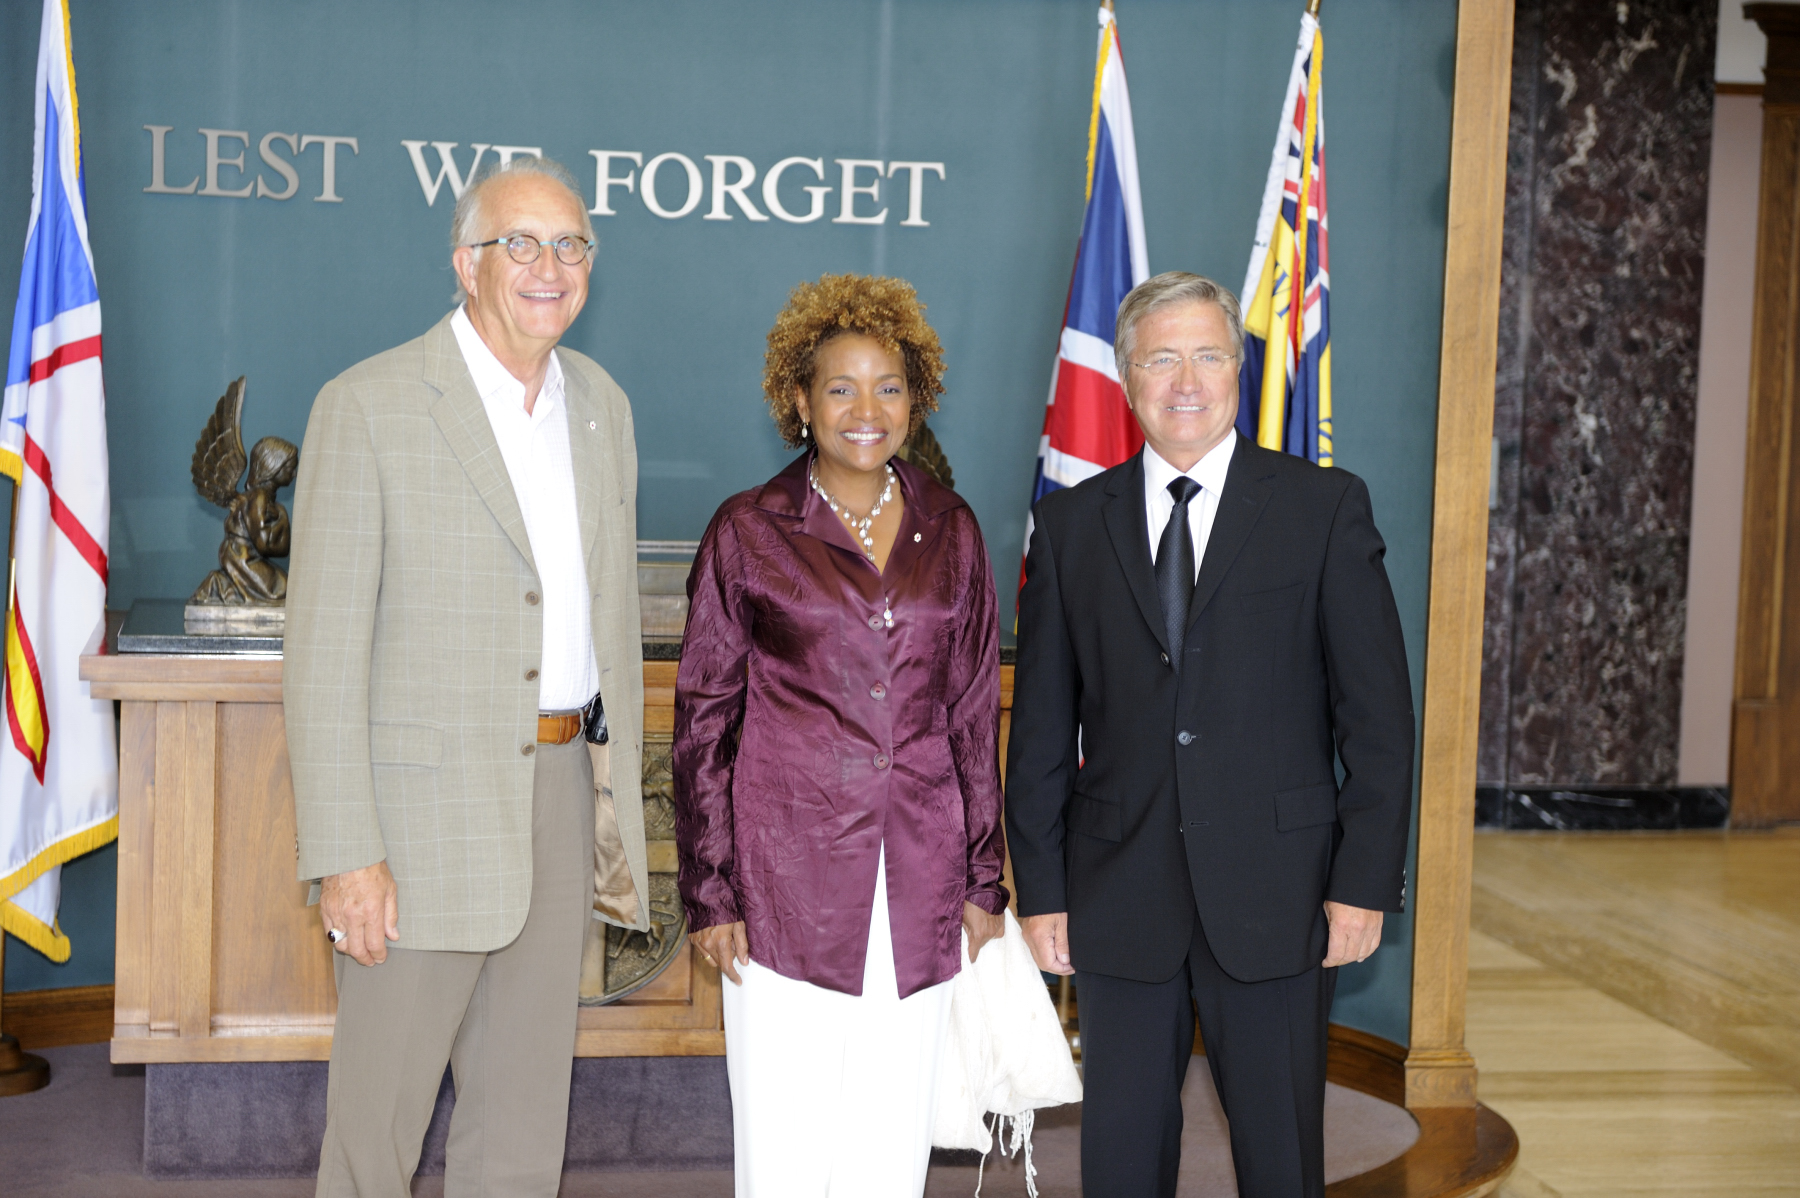 Their Excellencies spoke in private with Premier Williams before undertaking a visit of the province.